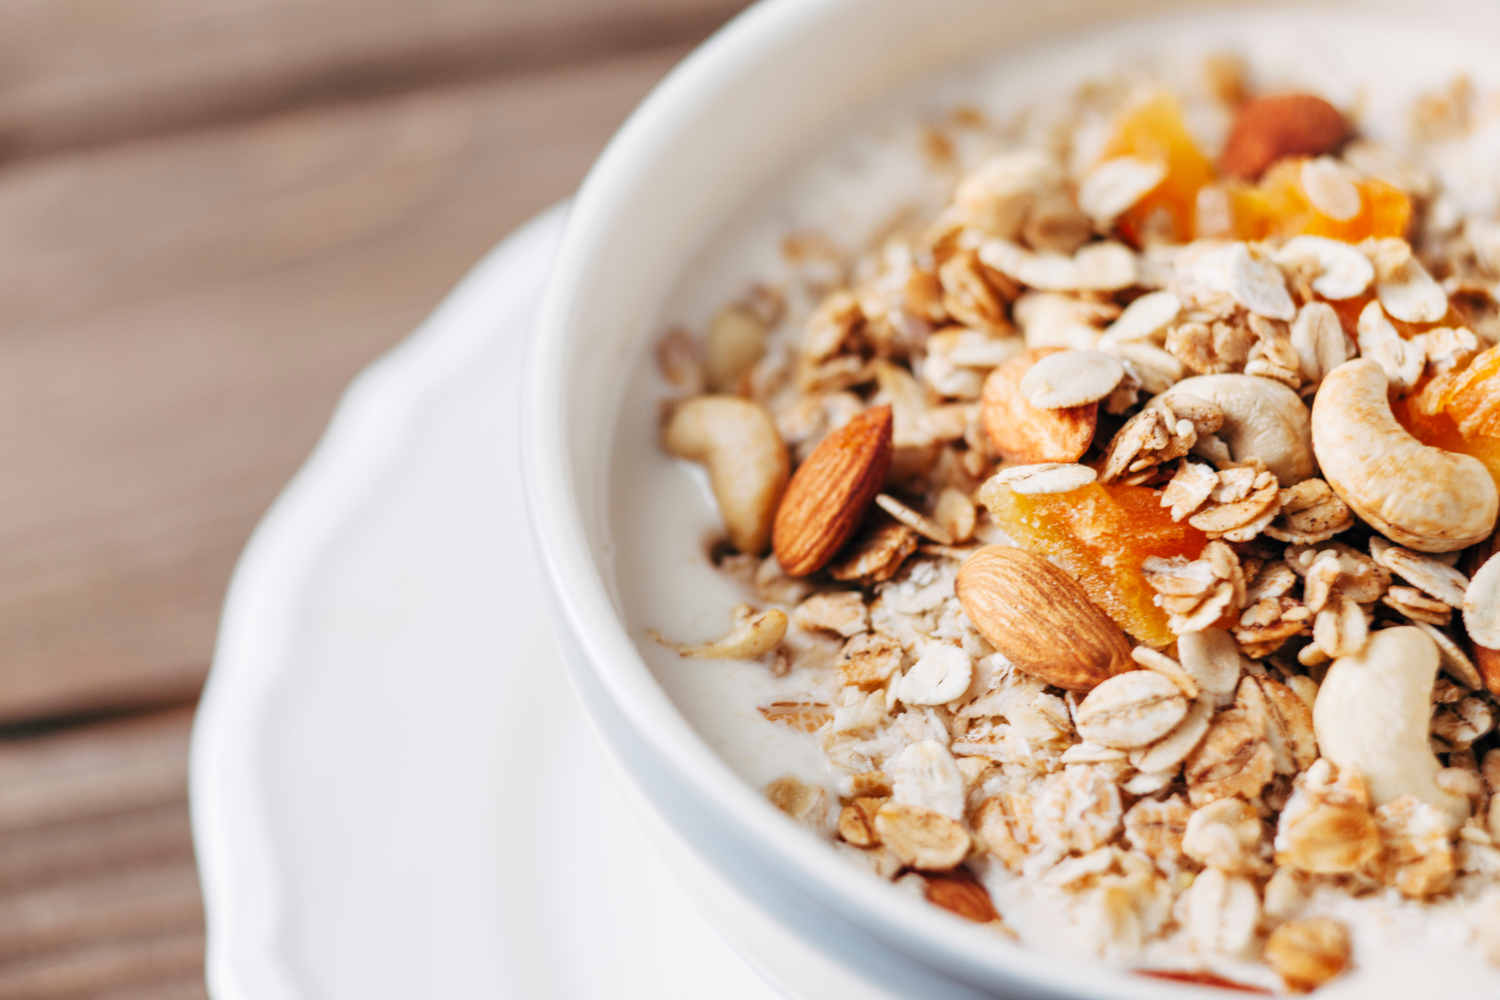 weightloss-recipe-muesli-apricots-almonds-coconut